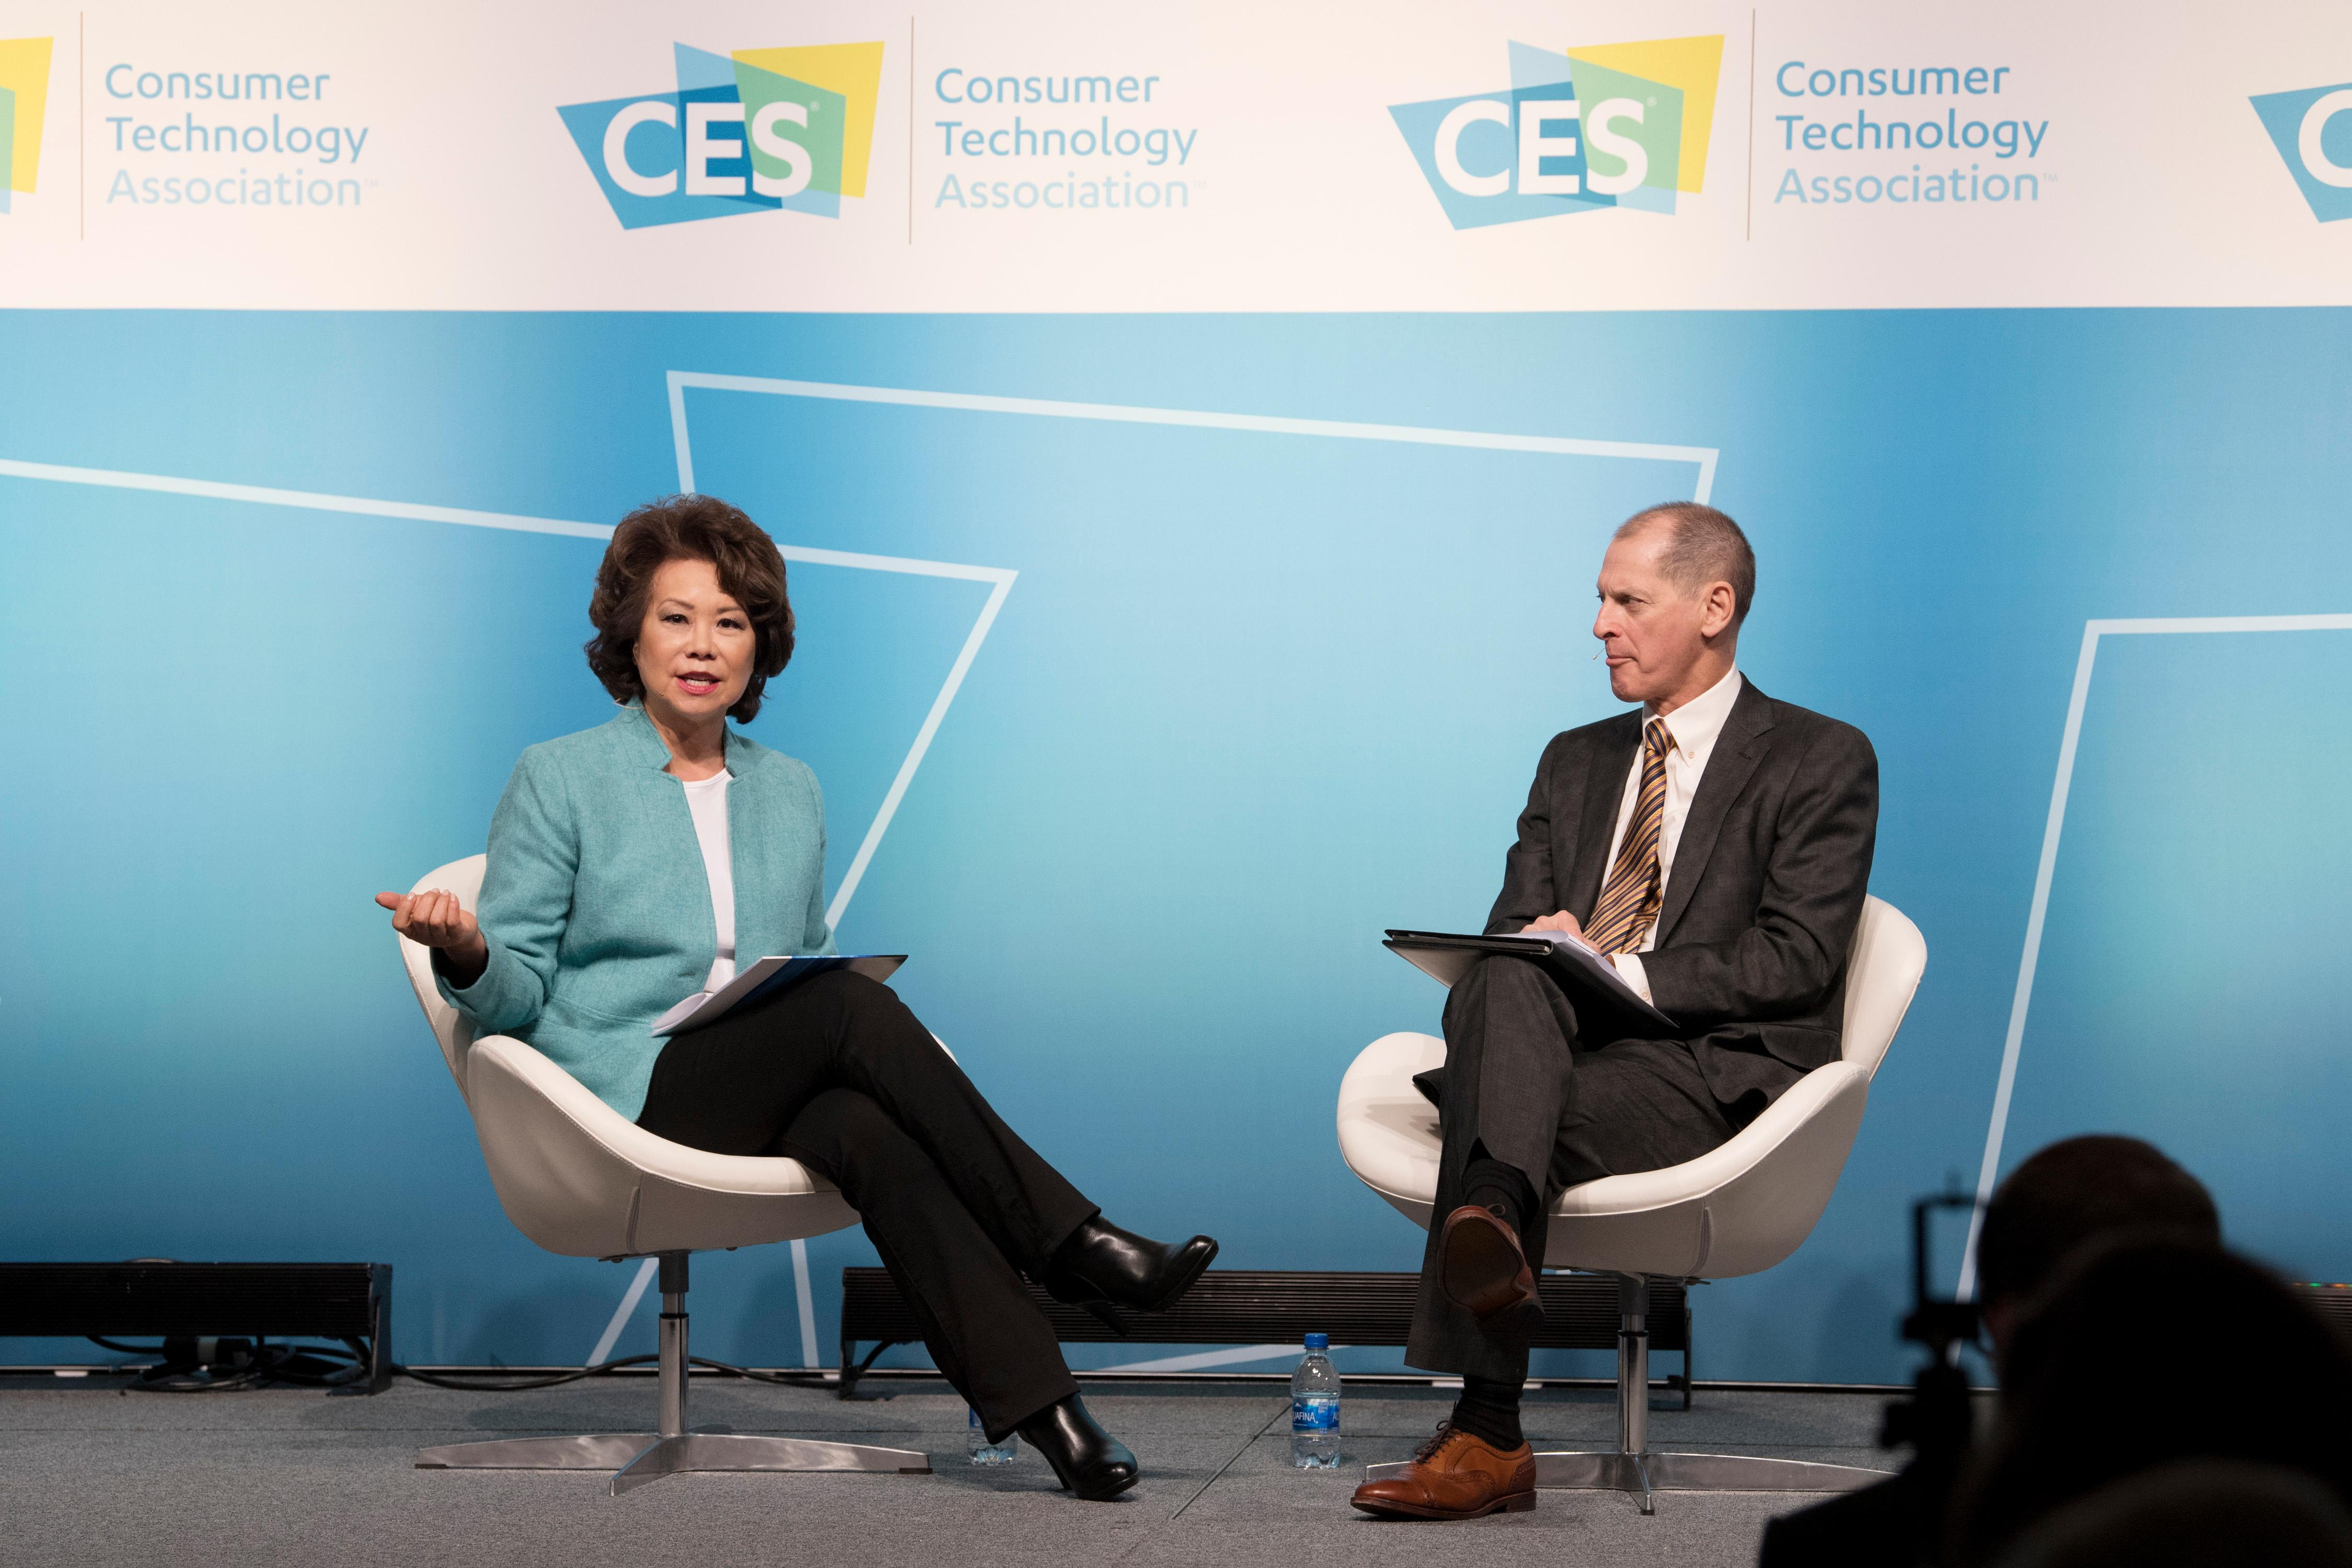 U.S. Secretary of Transportation Elaine Chao and Consumer Technology Association President and CEO Gary Shapiro have a conversation during the second day of CES Wednesday, January 10, 2018, at the Westgate. CREDIT: Sam Morris/Las Vegas News Bureau